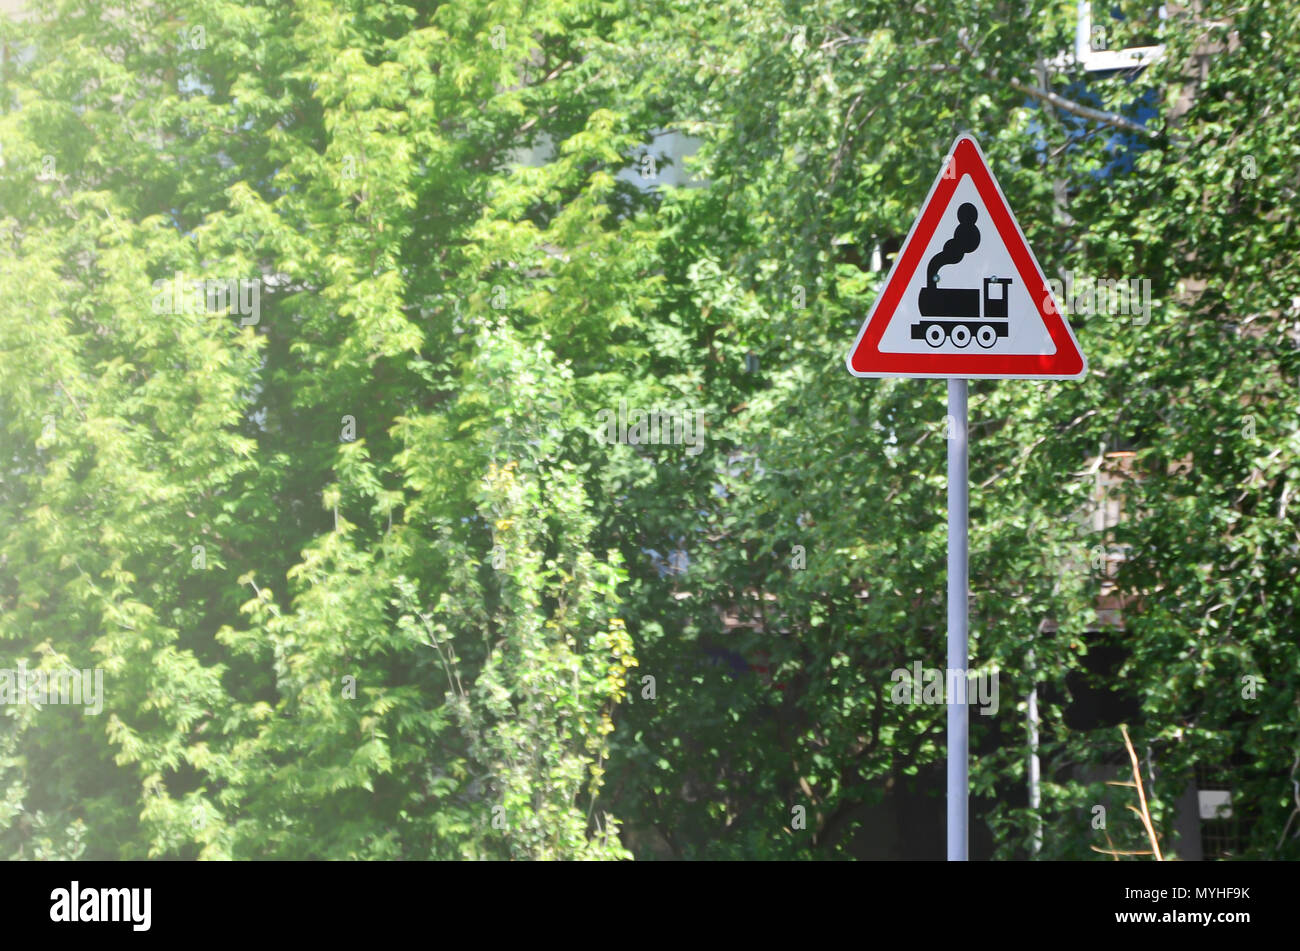 Triangular road sign with a picture of a black locomotive on a white background in a red frame. Warning sign for the presence of a railway crossing th - Stock Image